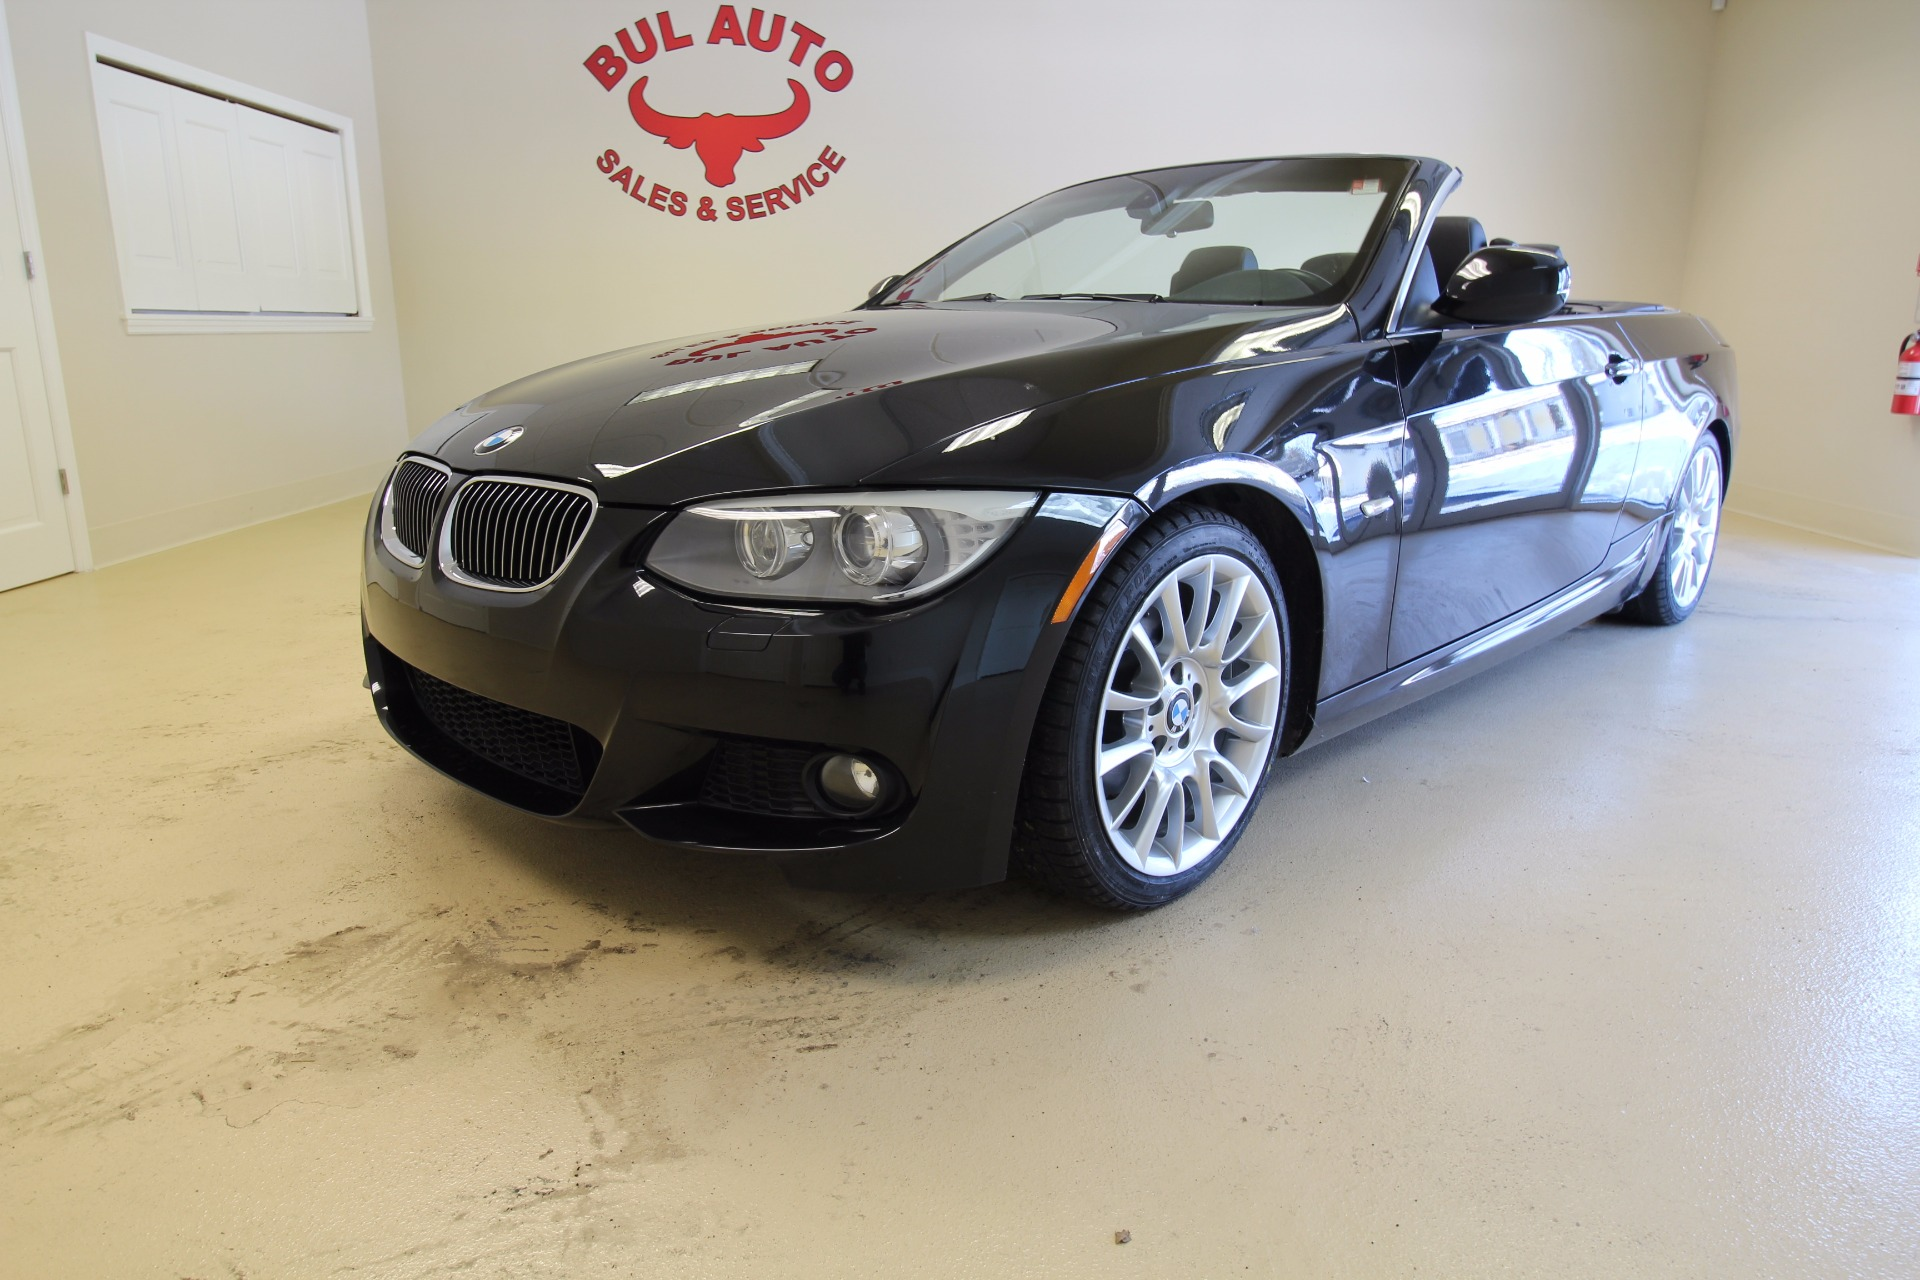 northshore sale mall for coupe auto bmw used xdrive